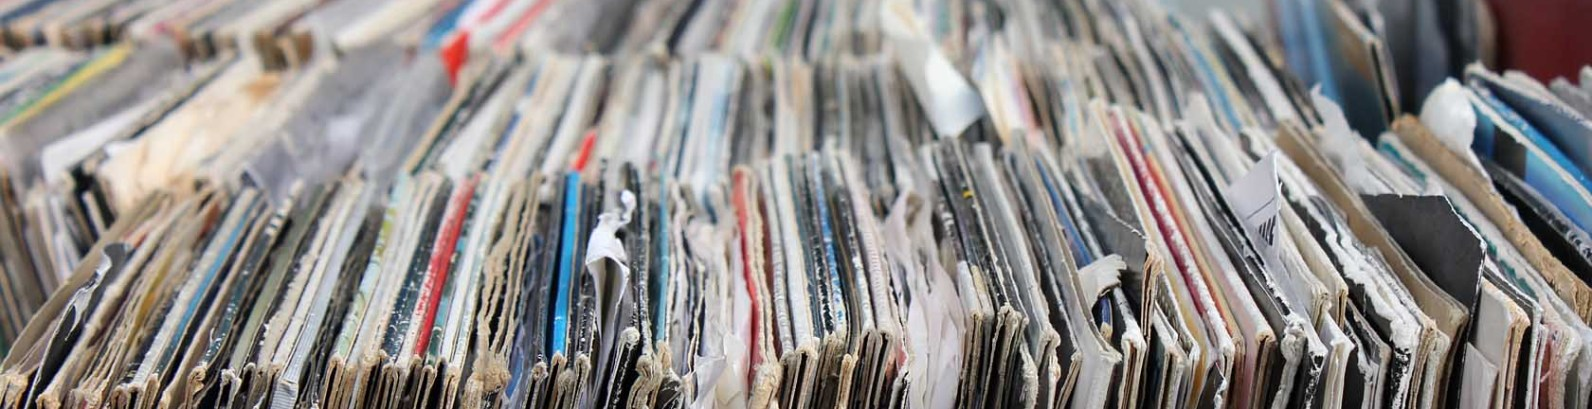 Classical Records Wanted - Cash Paid - Sell Classical Vinyl LPs